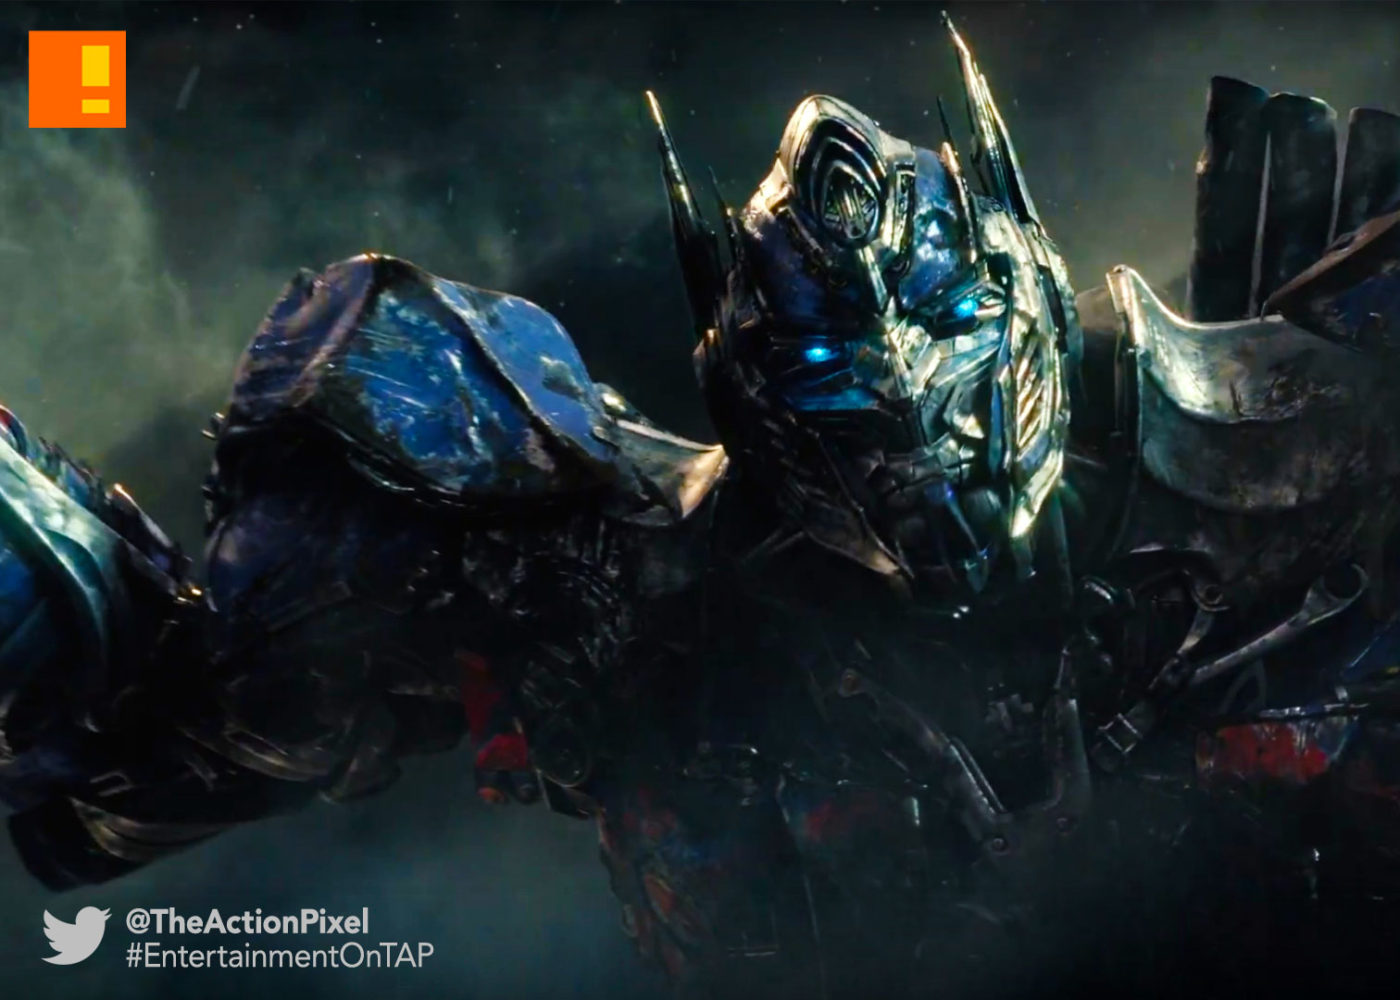 megatron, transformers, the last knight, transformers: the last knight, paramount pictures, entertainment on tap, the action pixel, omnicron, teaser, trailer, optimus prime, michael bay,